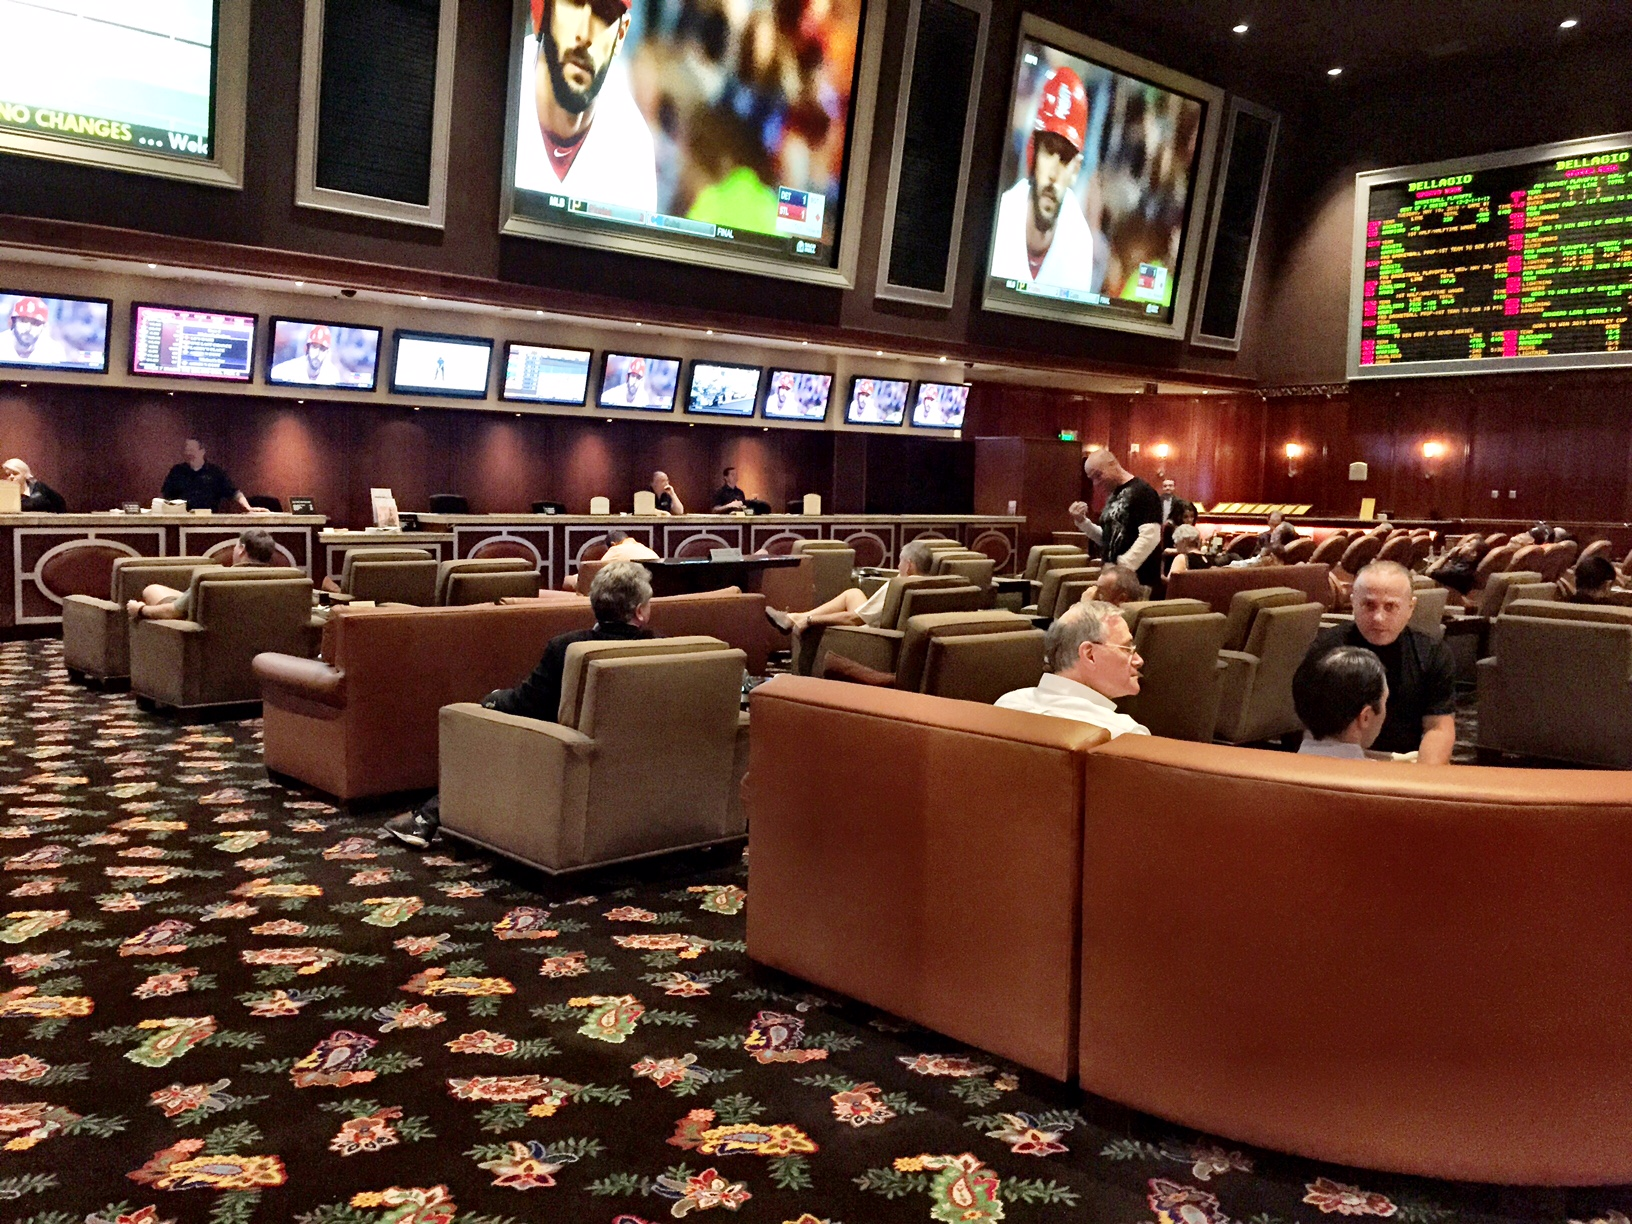 Las Vegas Sports Book News Daily Fantasy Betting On Its